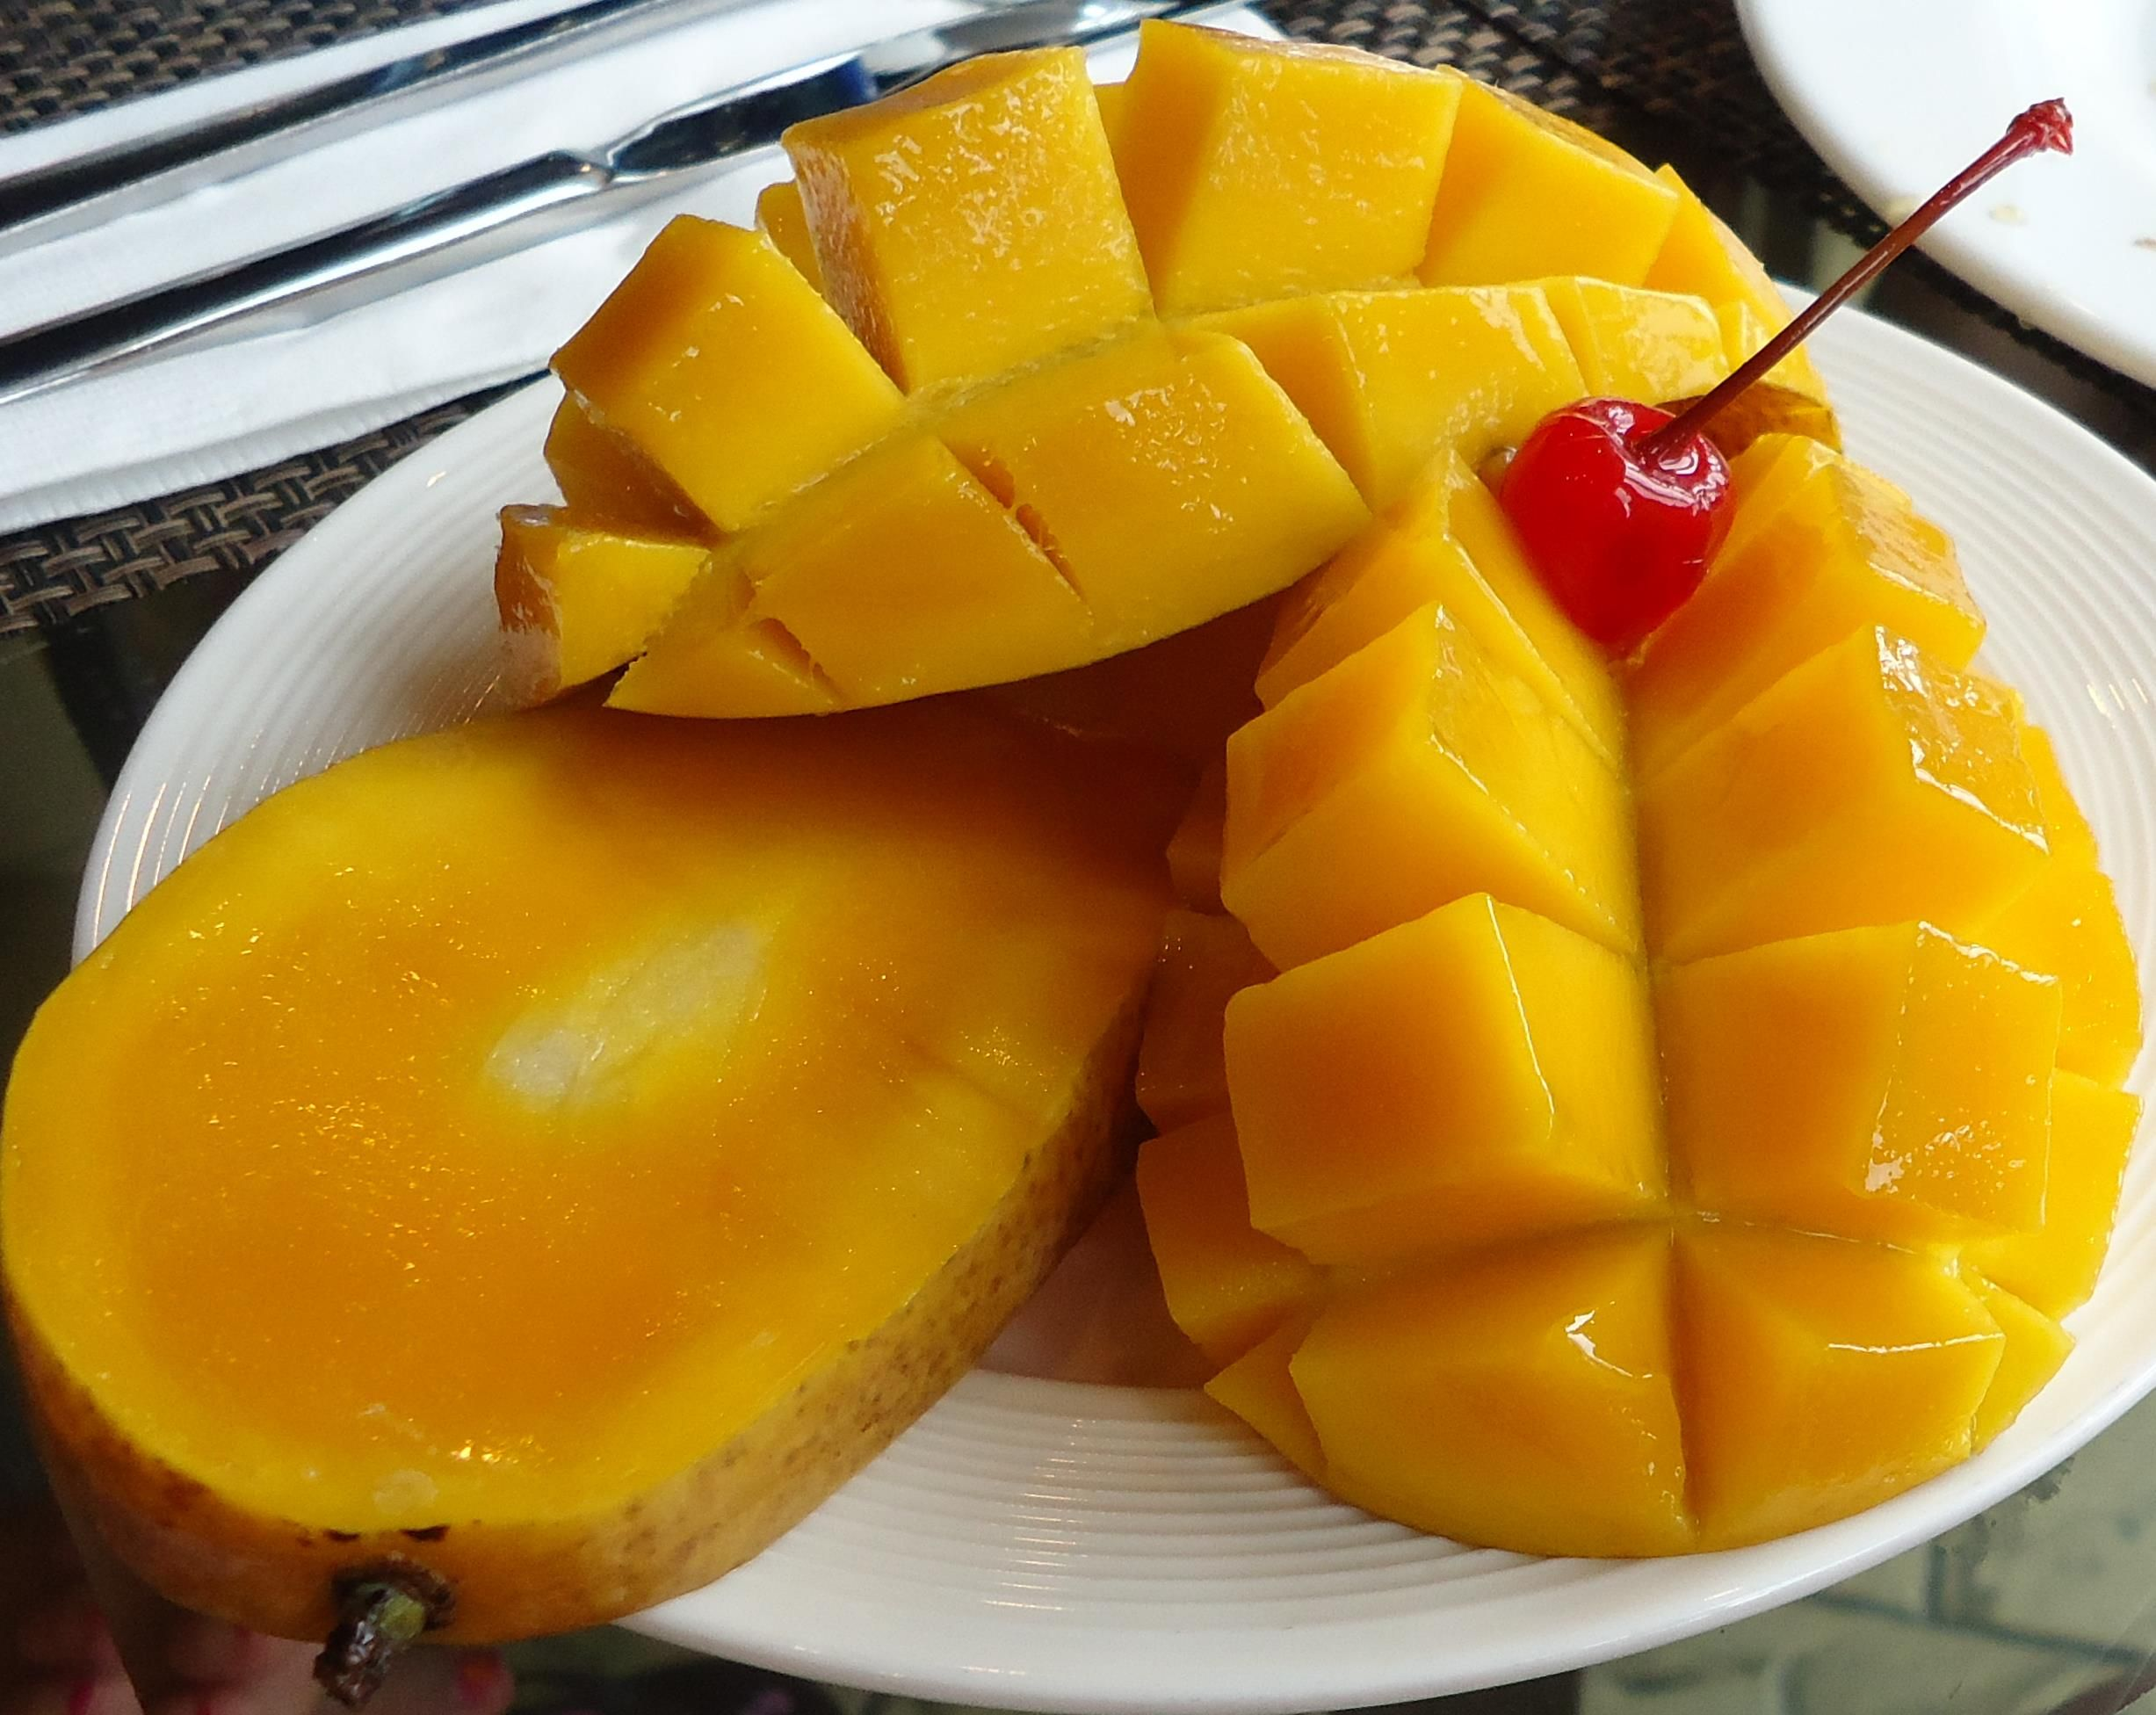 Sweet, Delicious Philippine Mango This Is Very Spiritually Inspiring!  Please Watch And Share Sometimes